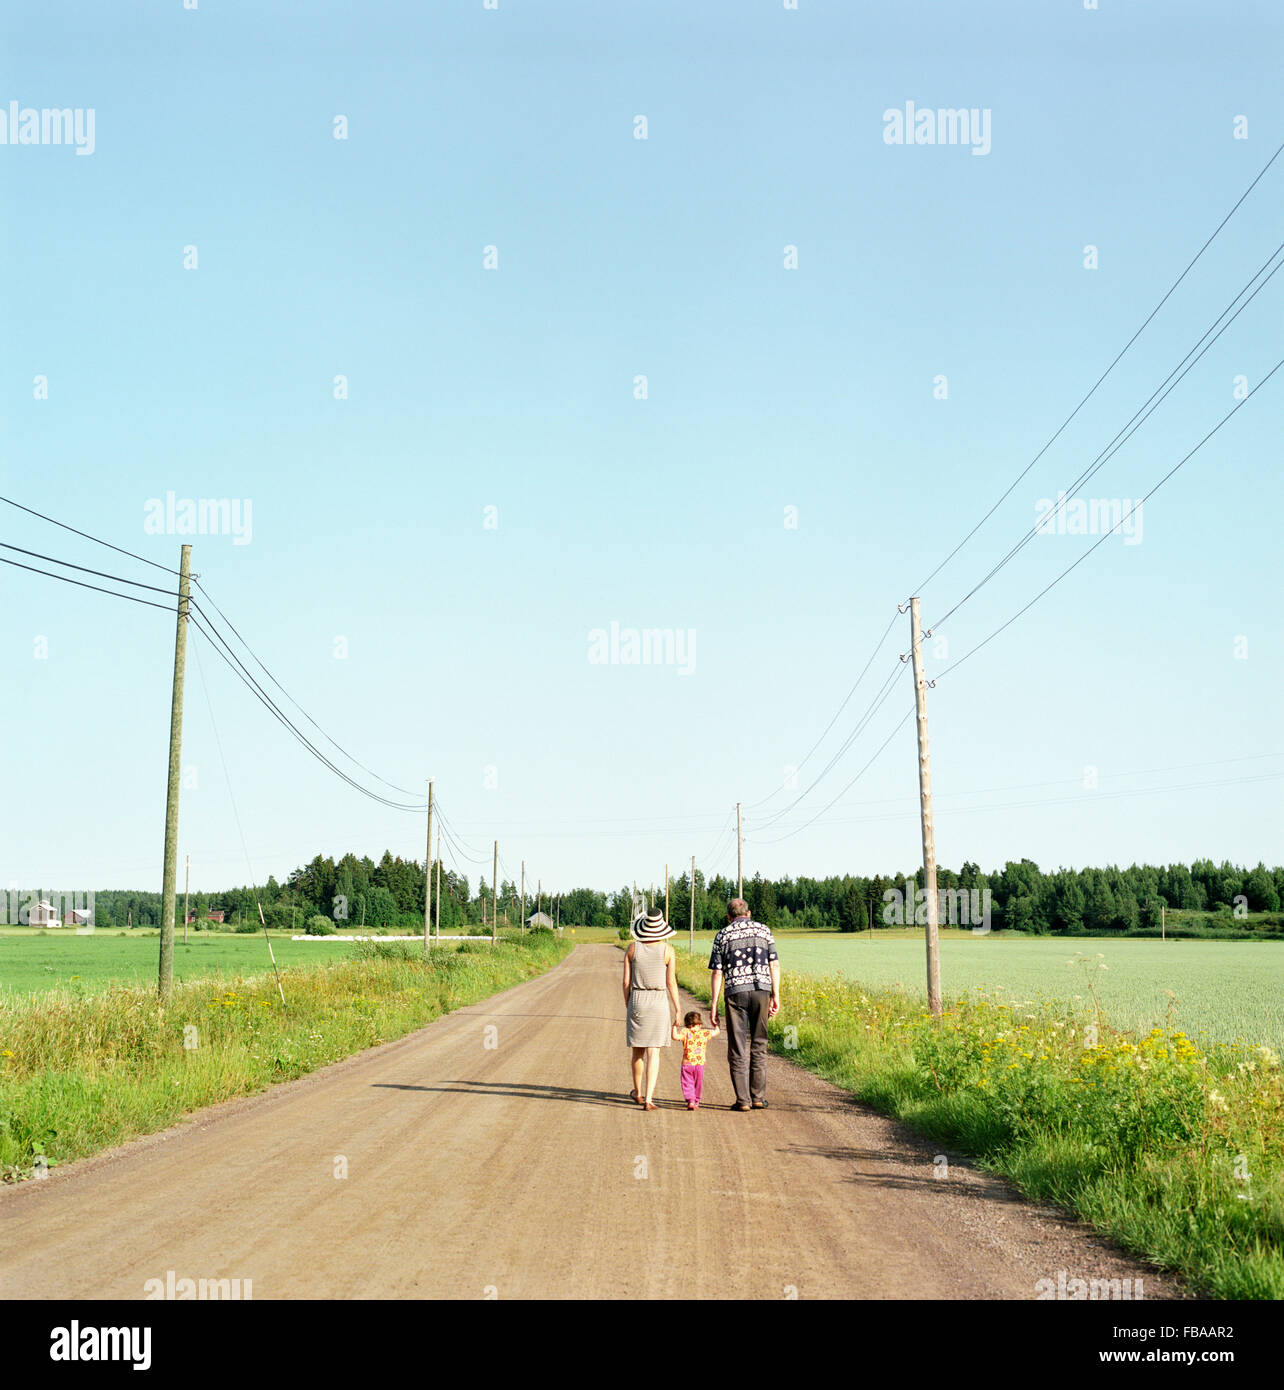 Finland, Uusimaa, Lapinjarvi, Rear view of people with child (2-3) walking along dirt road - Stock Image